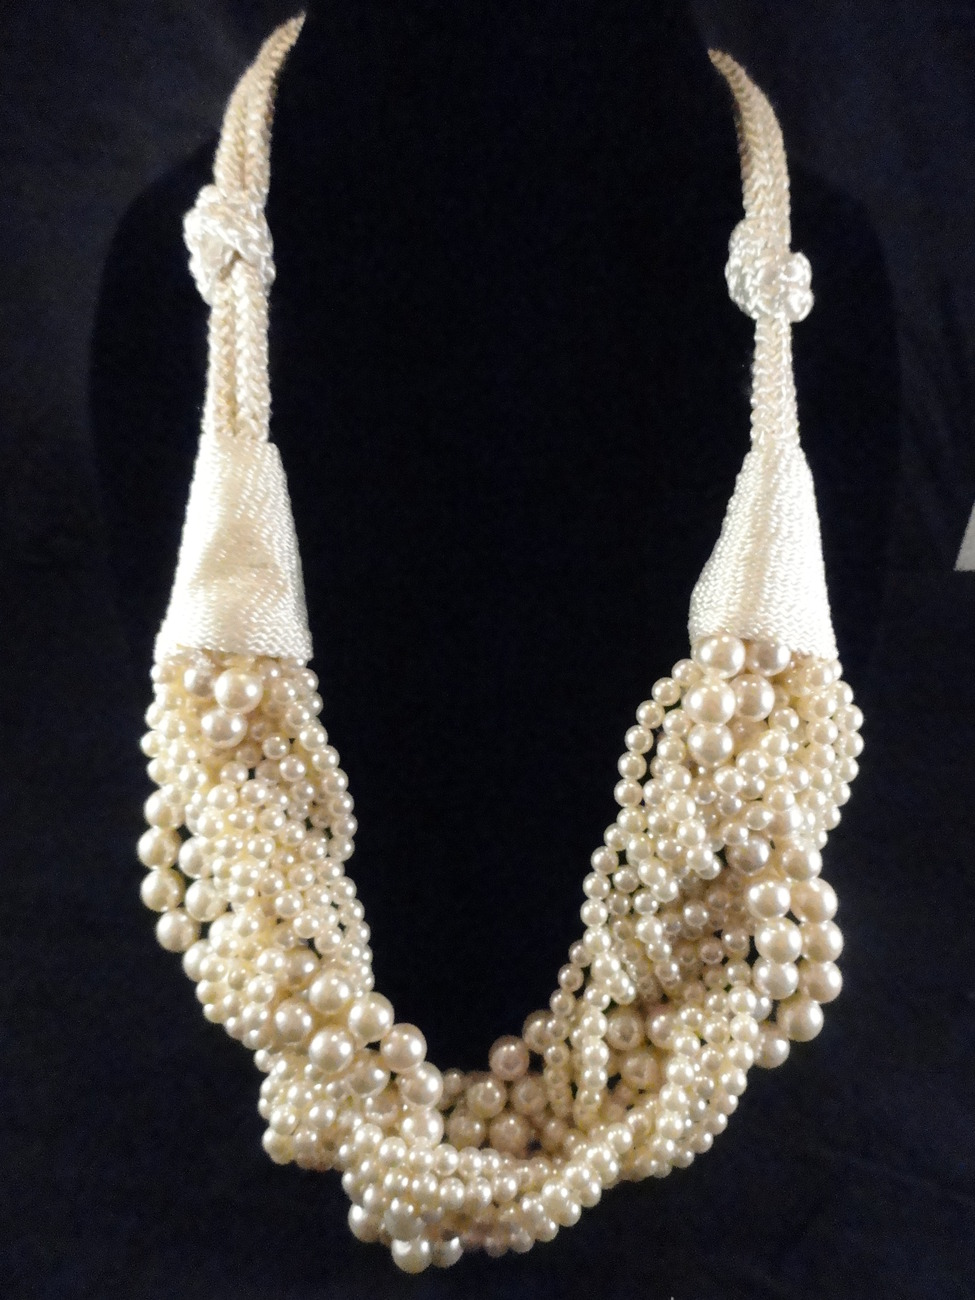 Primary image for 11 Strand 1980's Chunky Cream Torsade Faux Pearl and Braided Rope Necklace